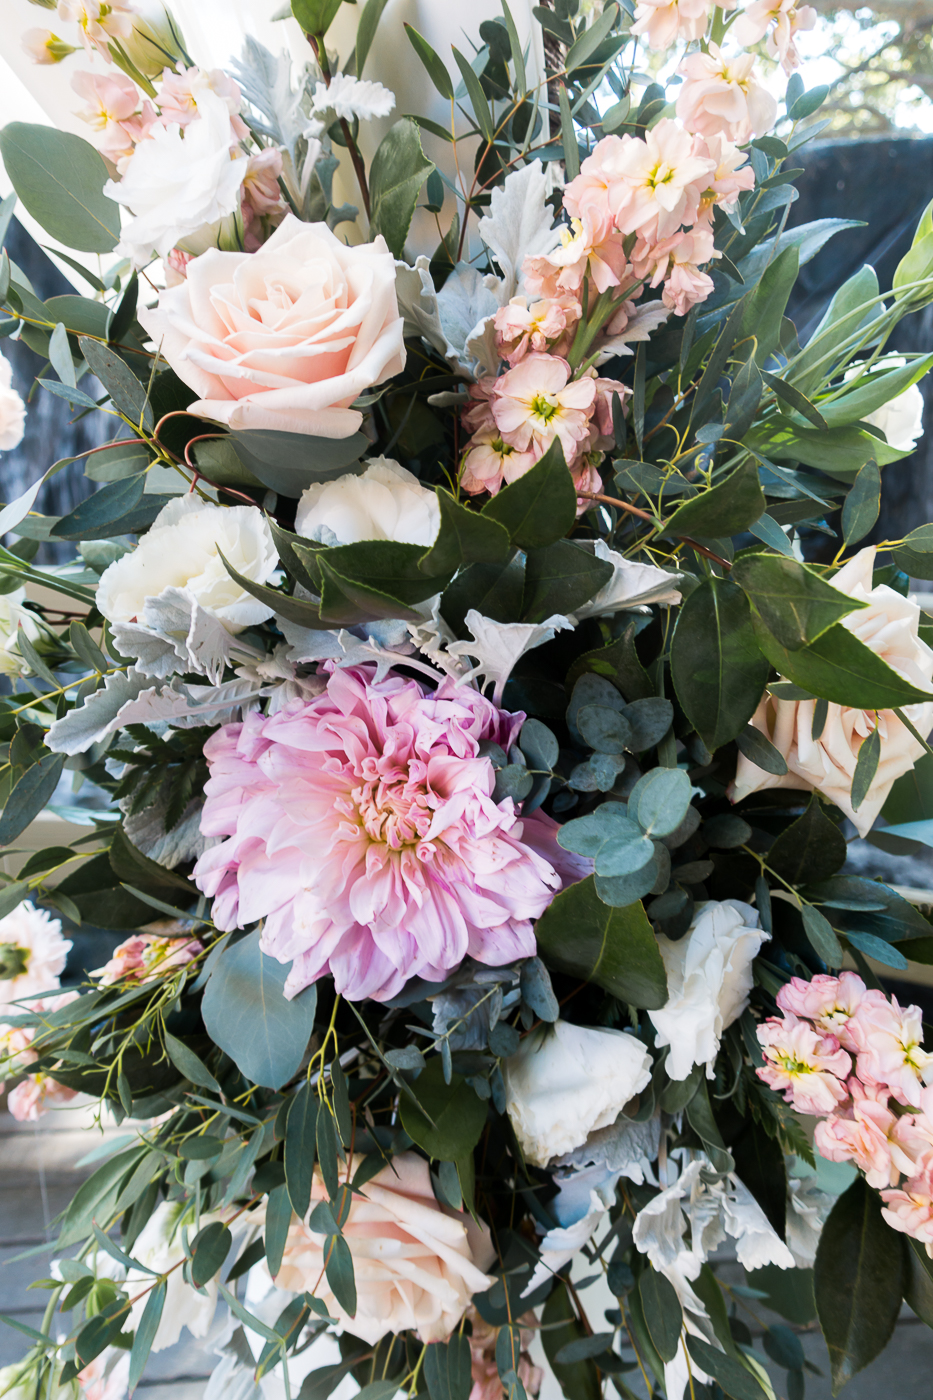 Calamigos Ranch - Wedding Flowers | The Chic Diary